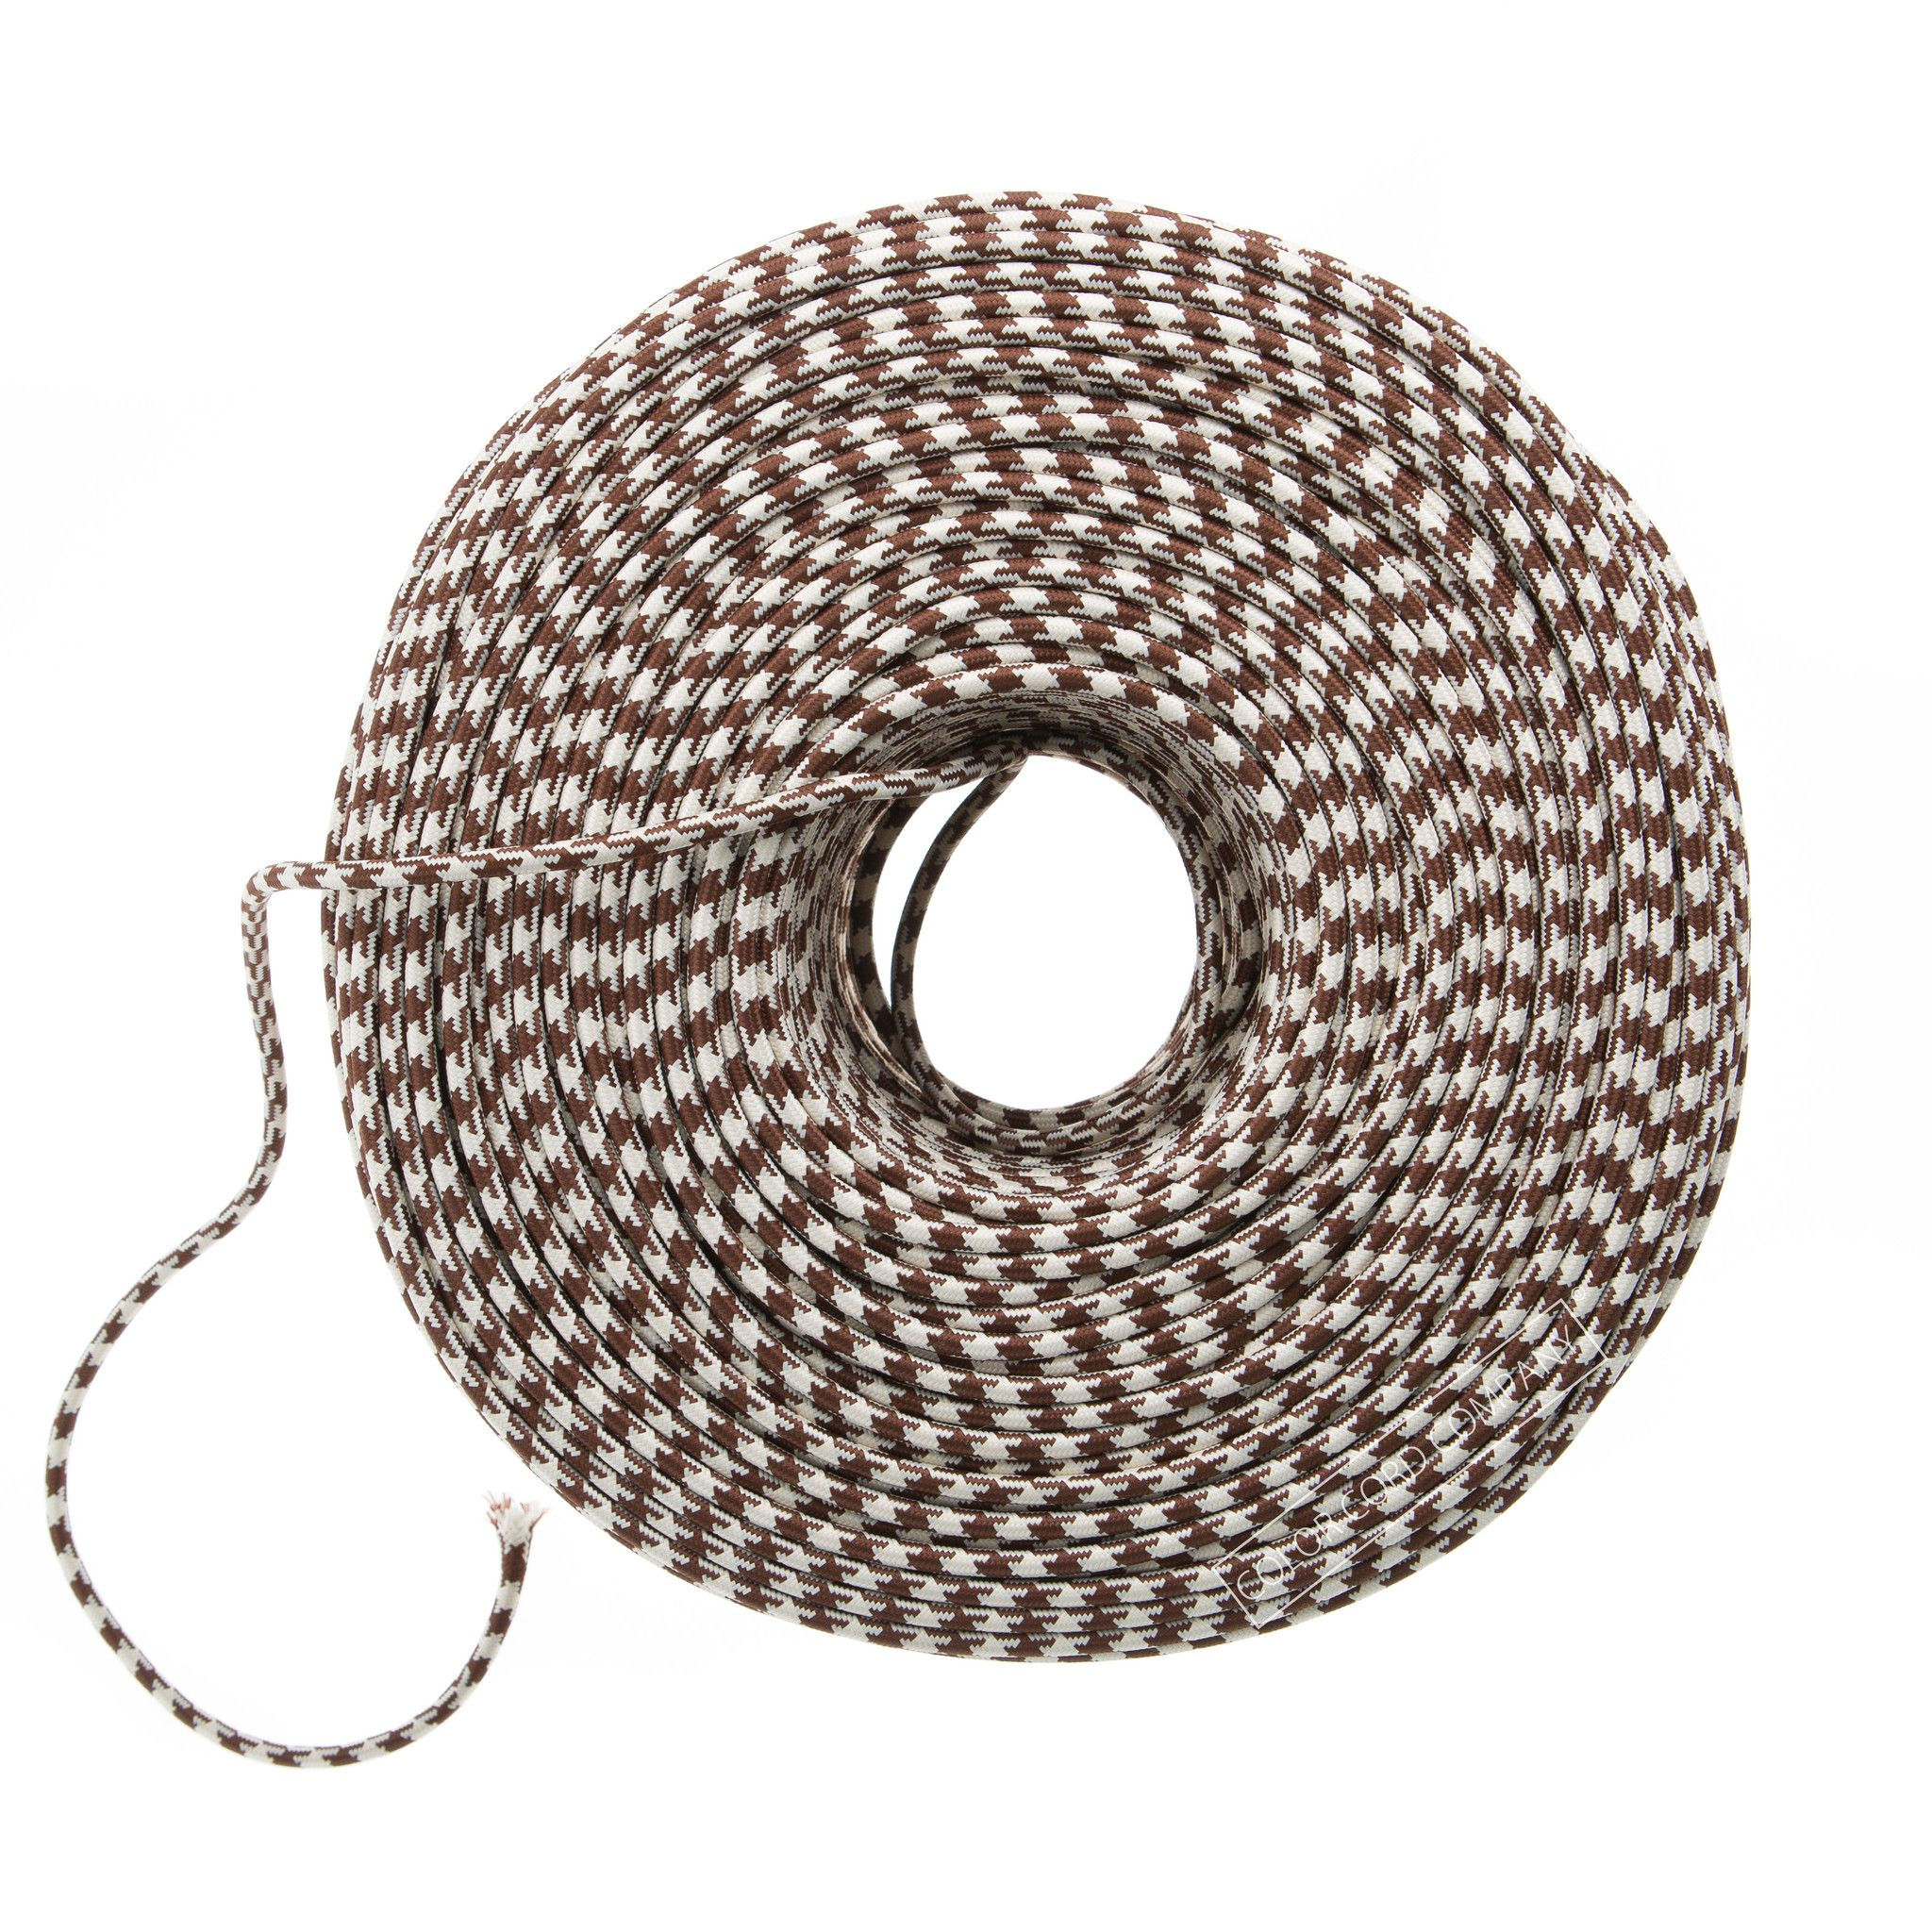 So Cord Listed 3 4 5 Conductor So Sow Cable Flexible Cored: Cloth Covered Wire - Brown & Ivory Houndstooth